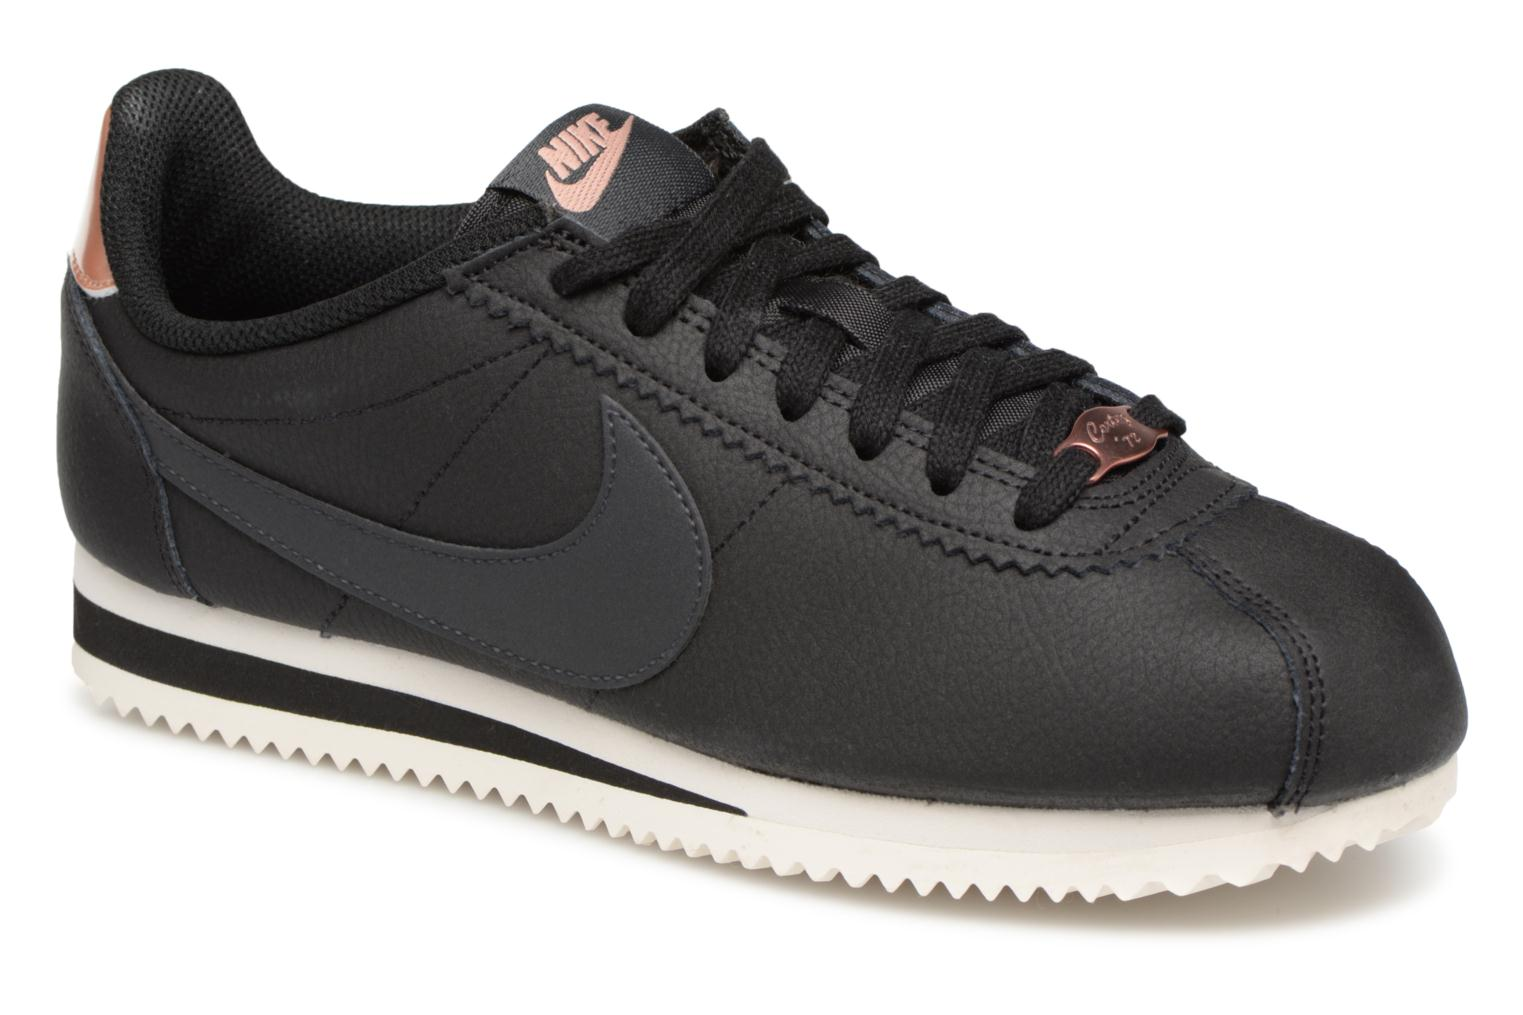 26c47bd054d7 ... cheap bronze classic cortez wmns phantom leather mtlc black red  anthracite nike hnrx8o ad81e d1741